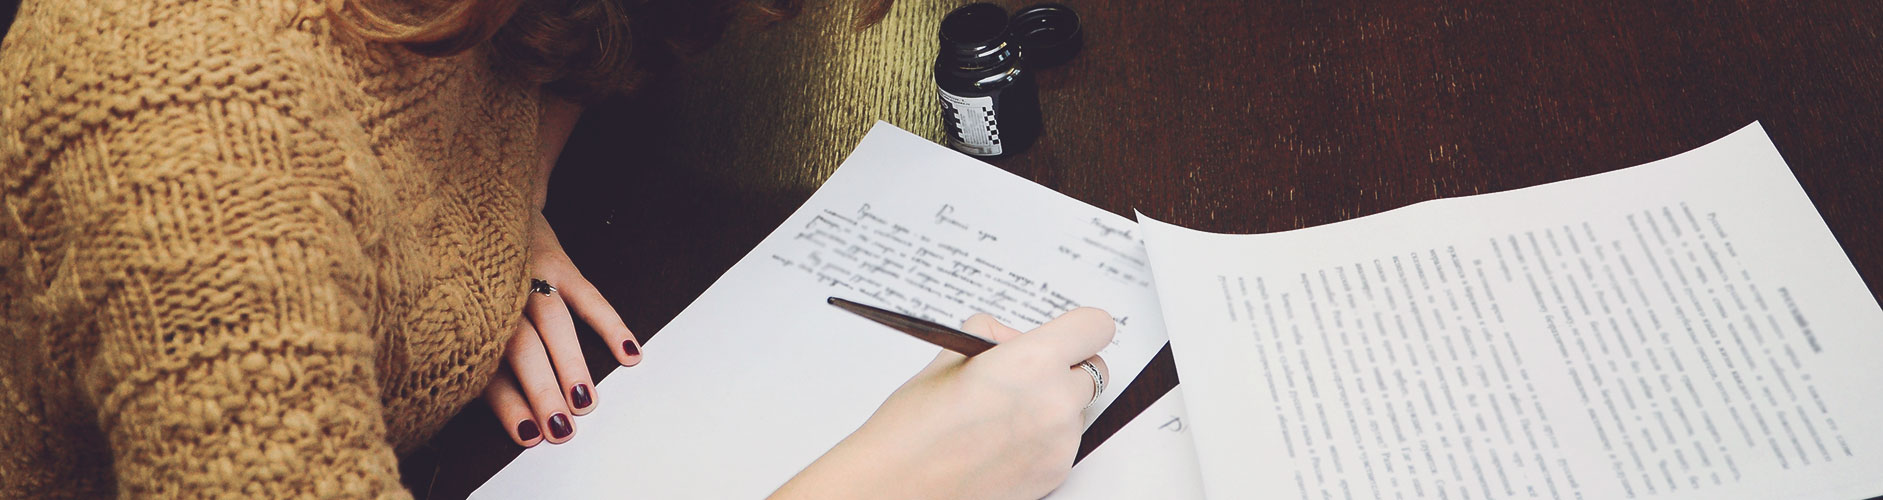 note-writing